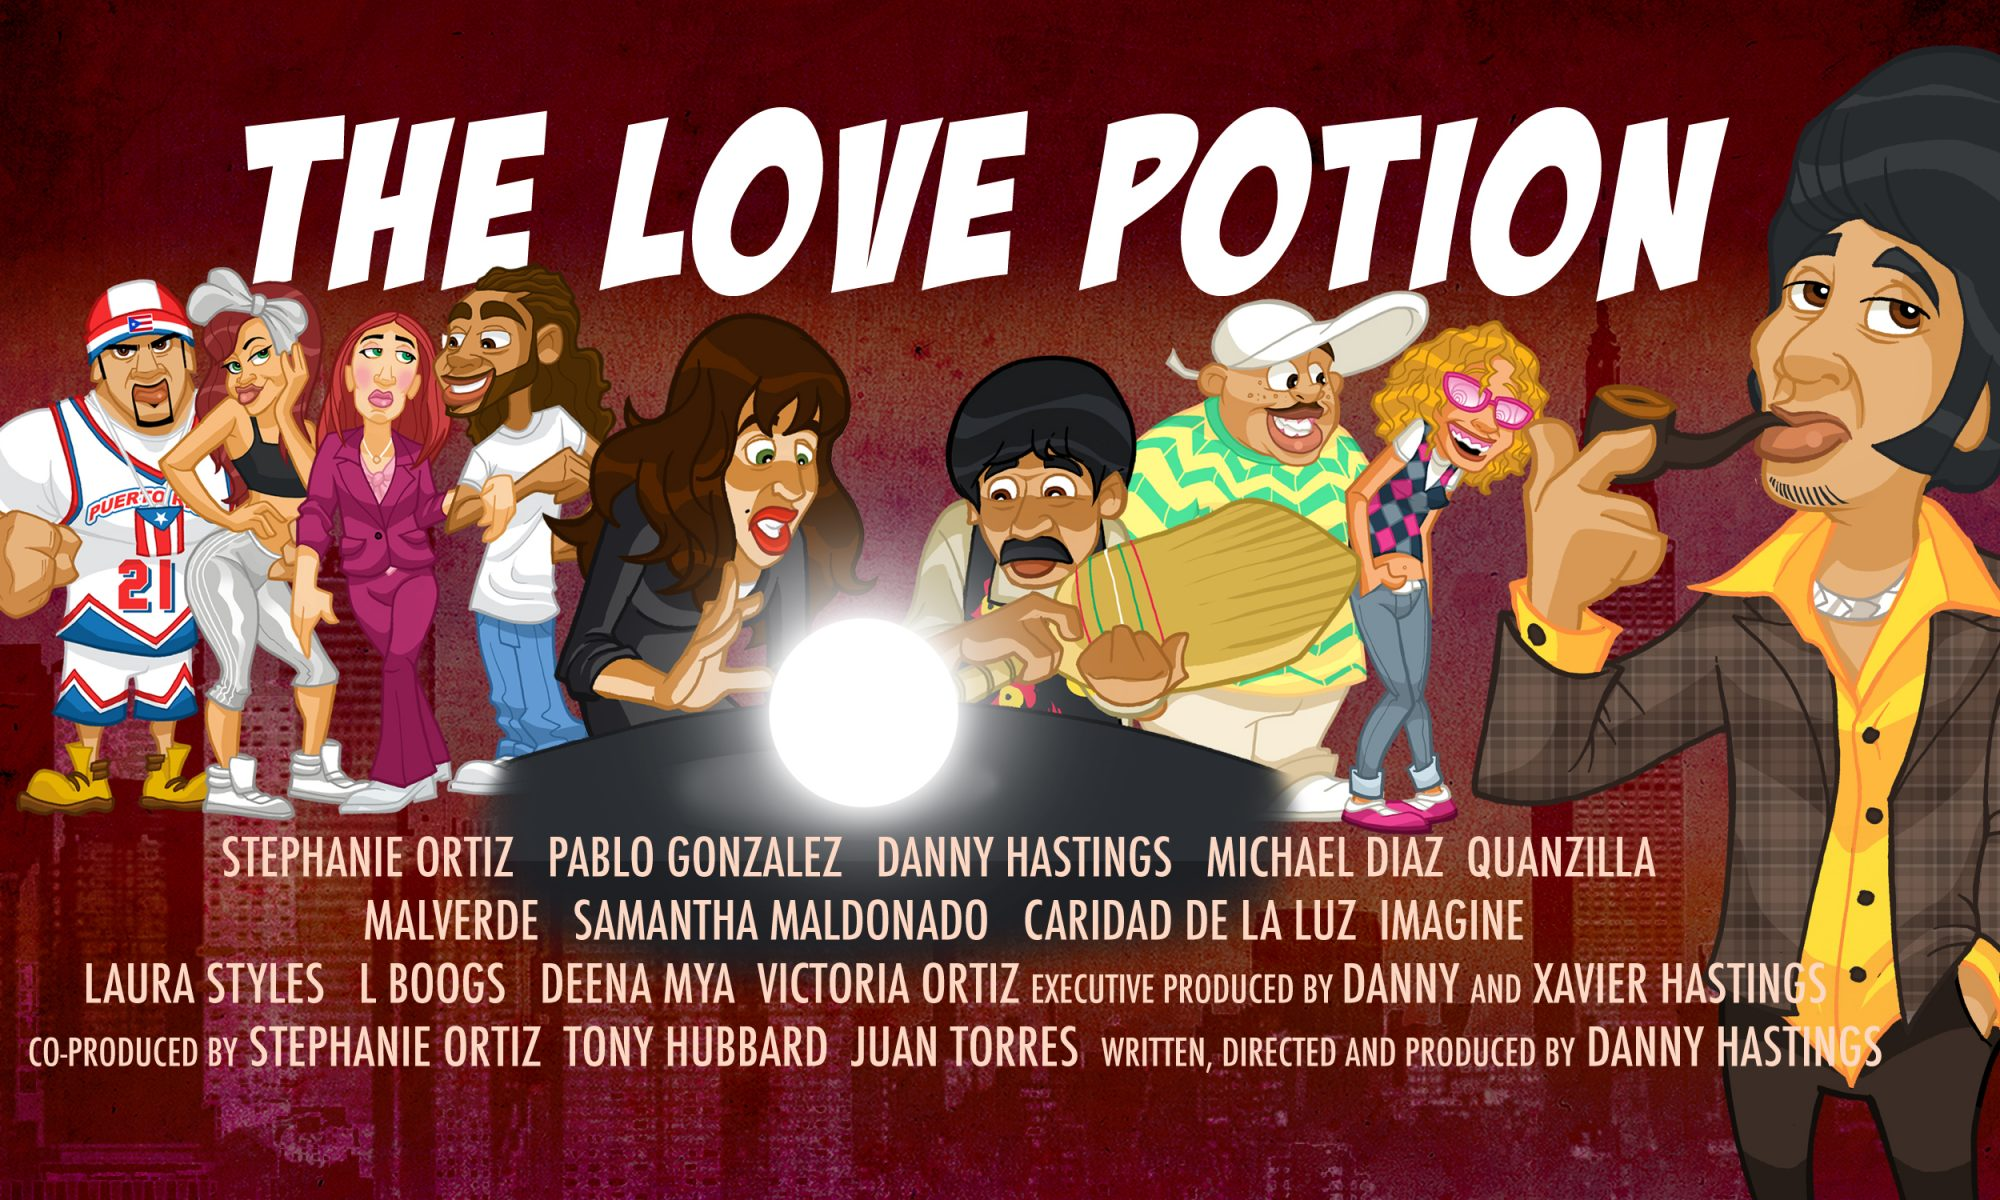 TheLovePotionMovie